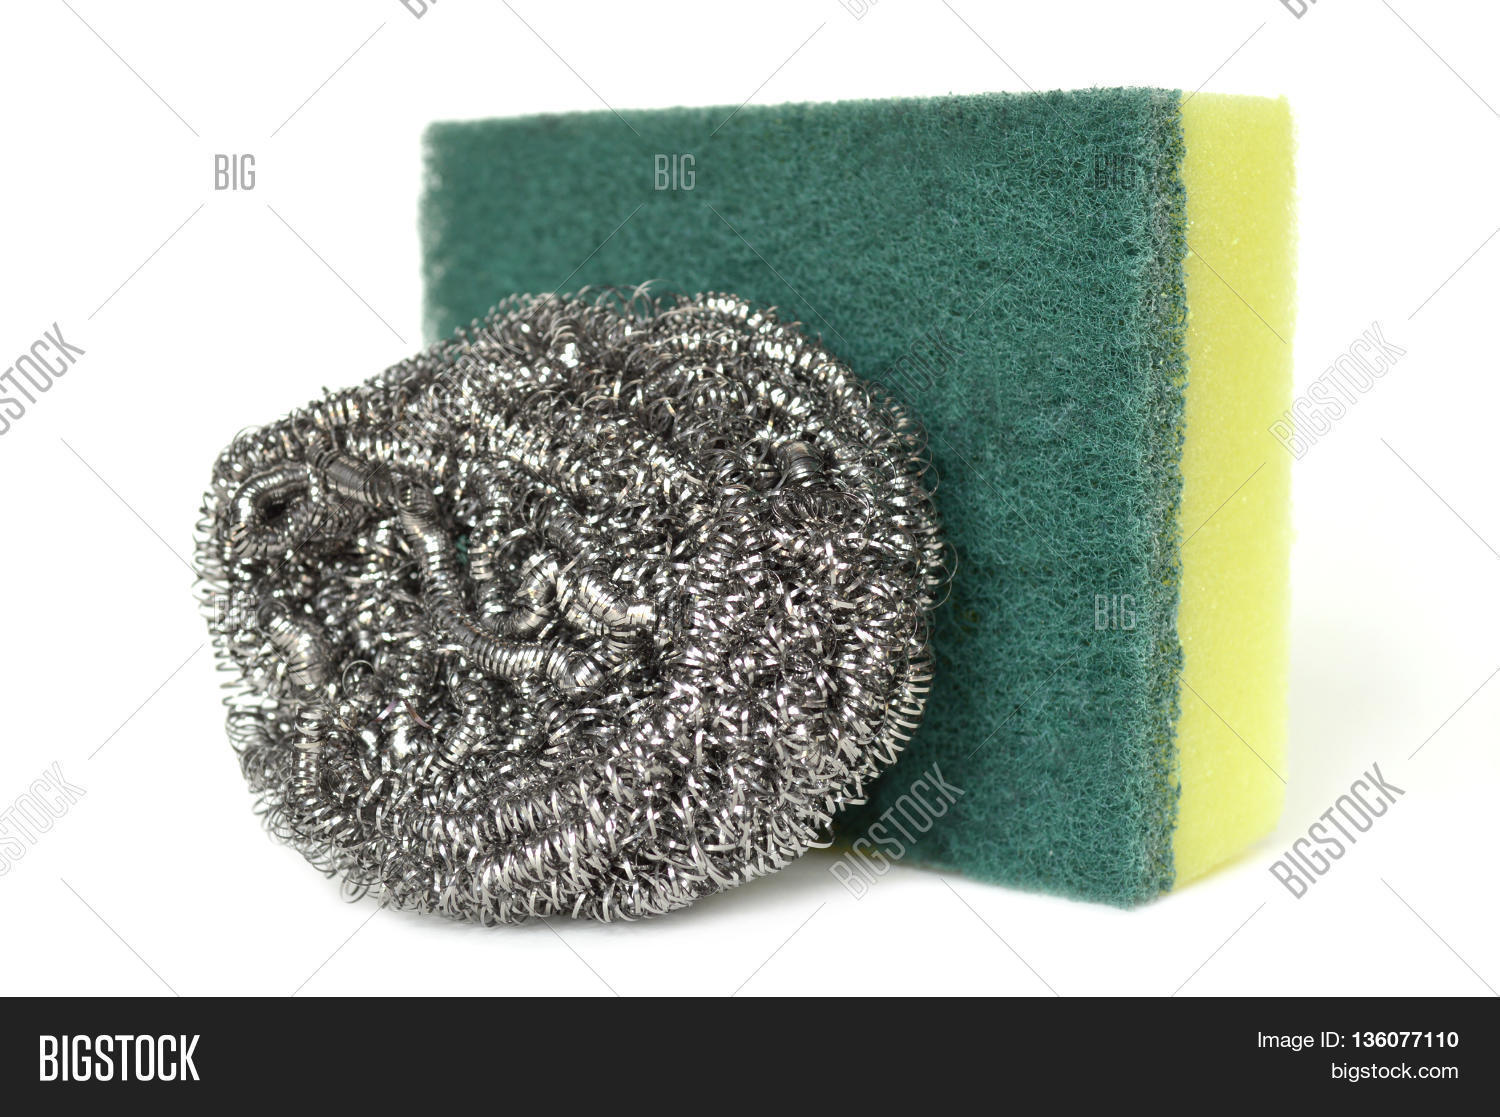 hight resolution of scrub sponge and steel wool on white background